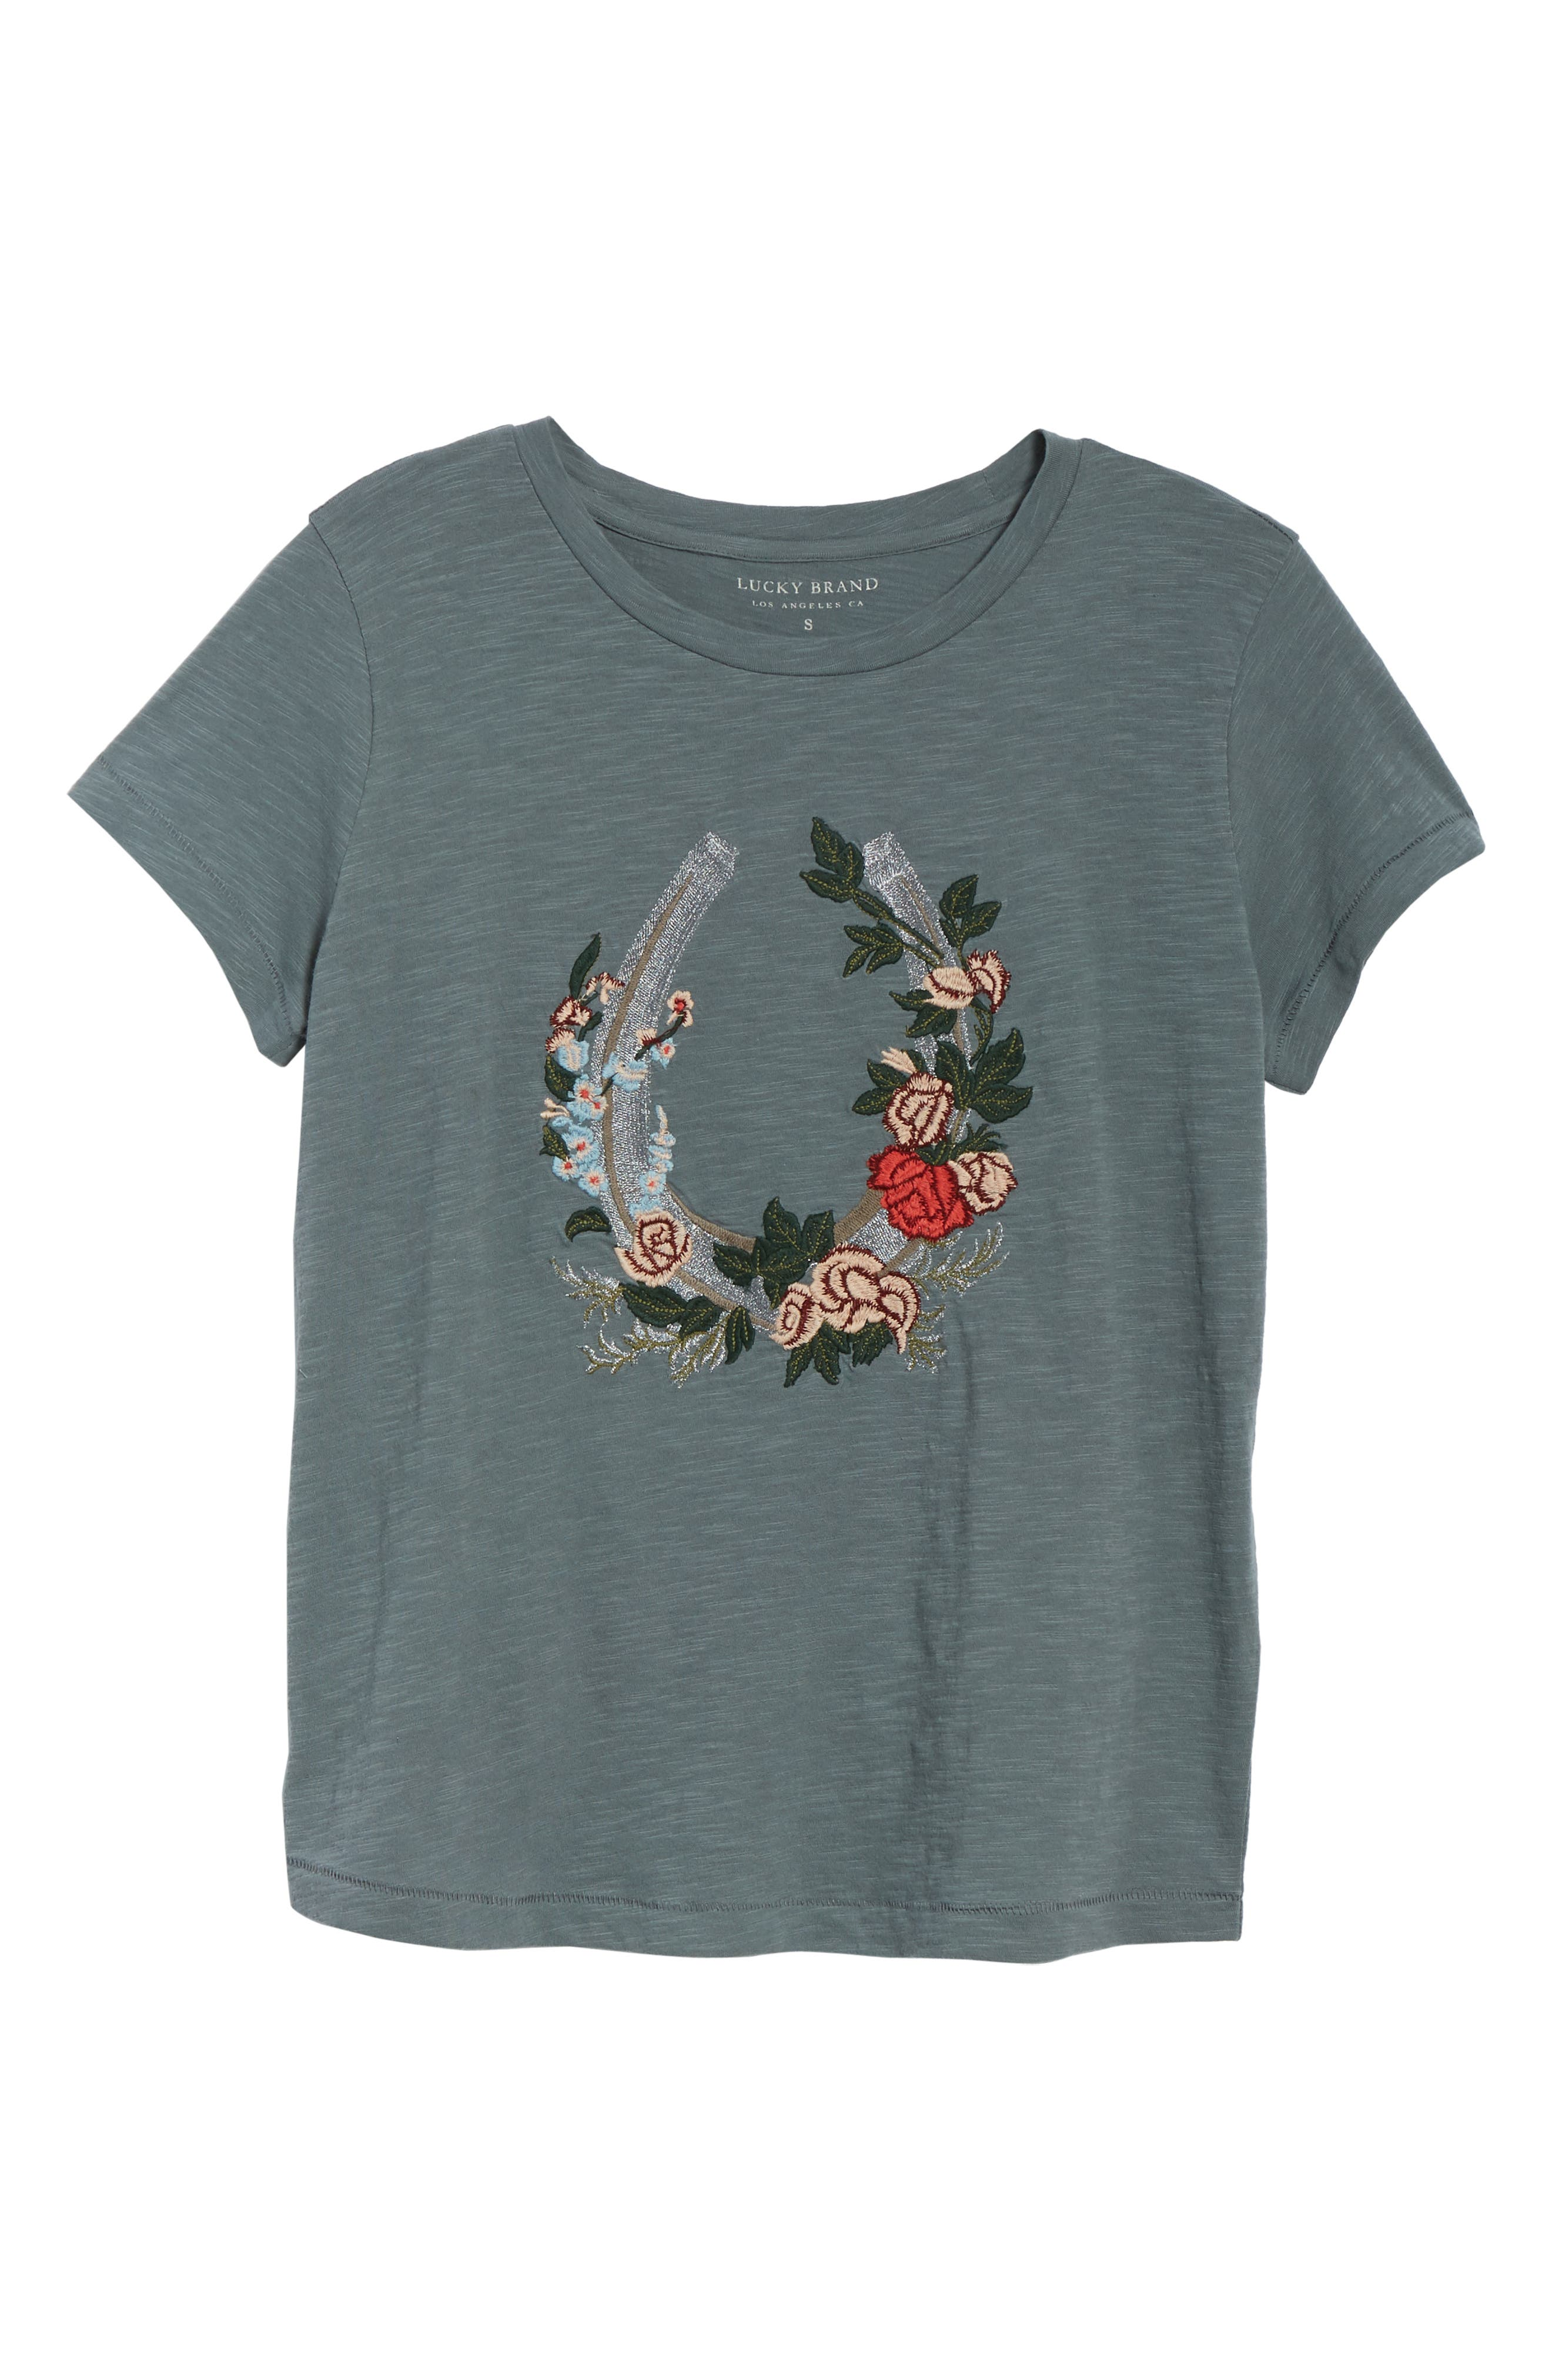 Floral Embroidery Tee,                             Alternate thumbnail 6, color,                             060